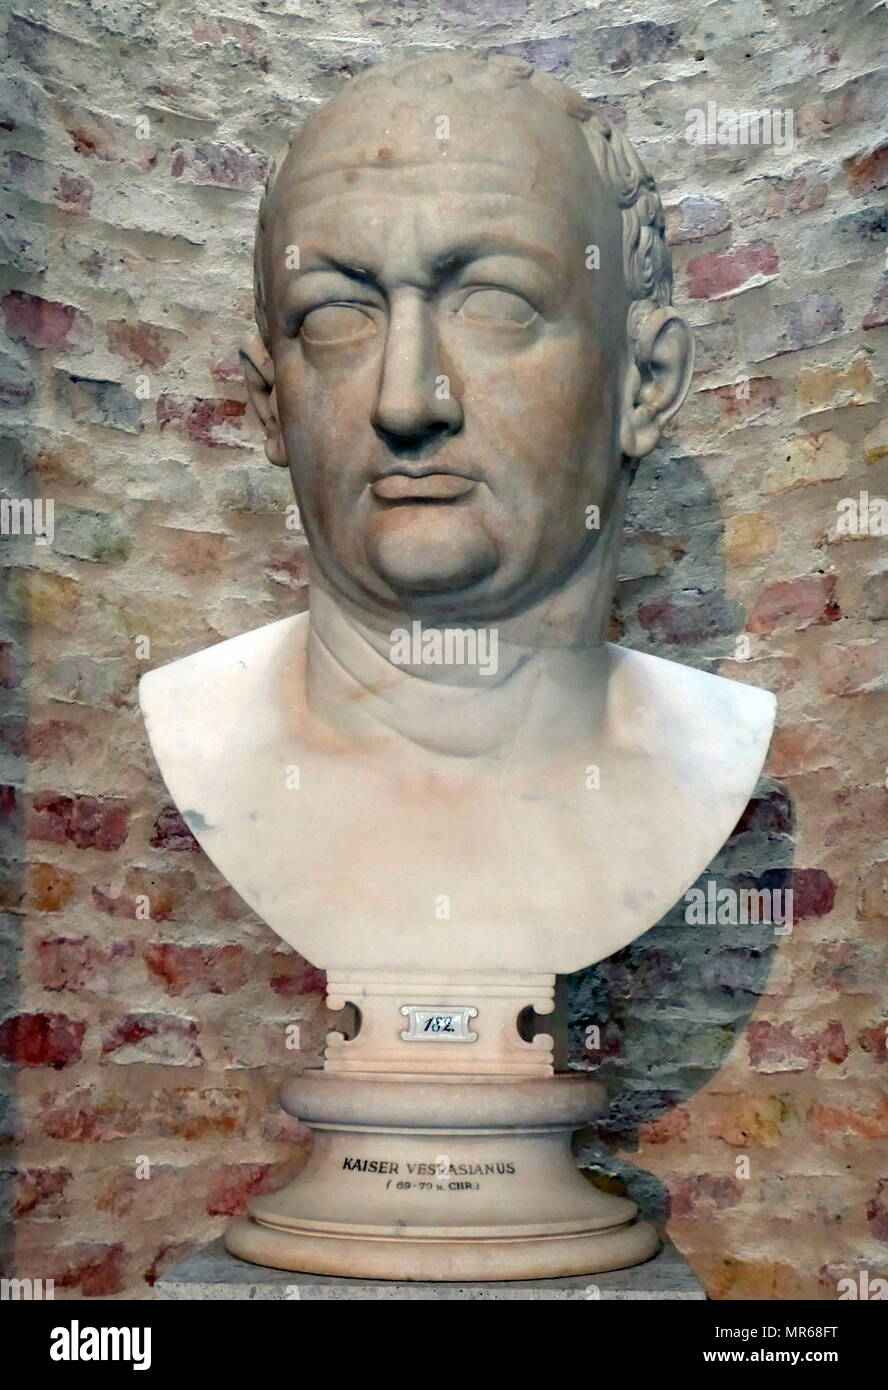 Vespasian ( AD 9 – 23  AD 79]); Roman emperor from AD 69 to AD 79. Vespasian founded the Flavian dynasty that ruled the Empire for twenty-seven years. - Stock Image